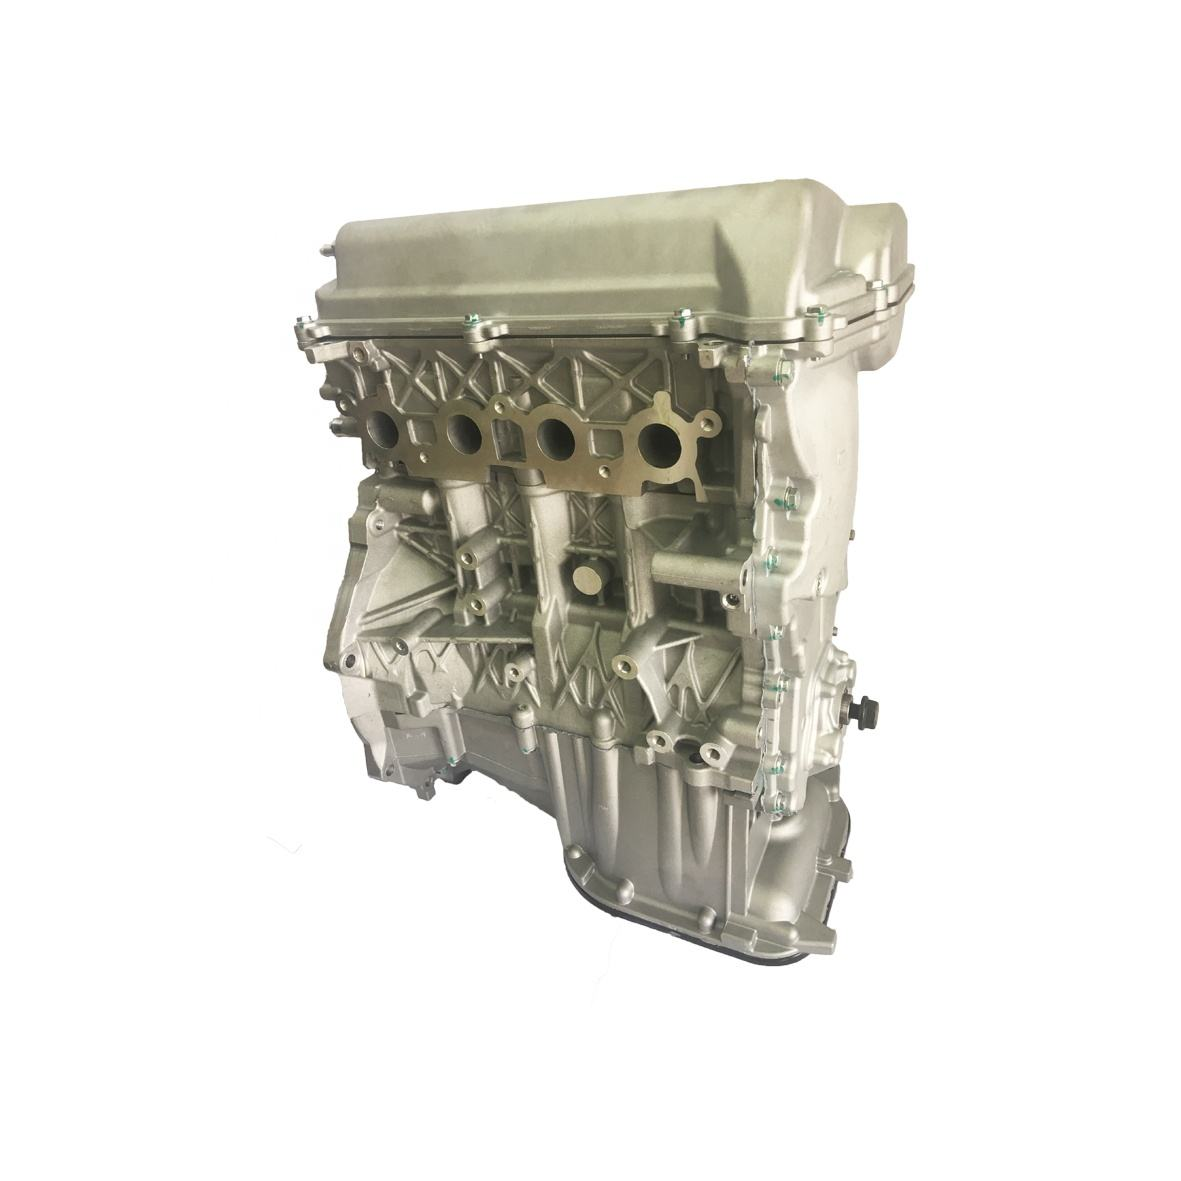 Bare engine for Great Wall 4G15